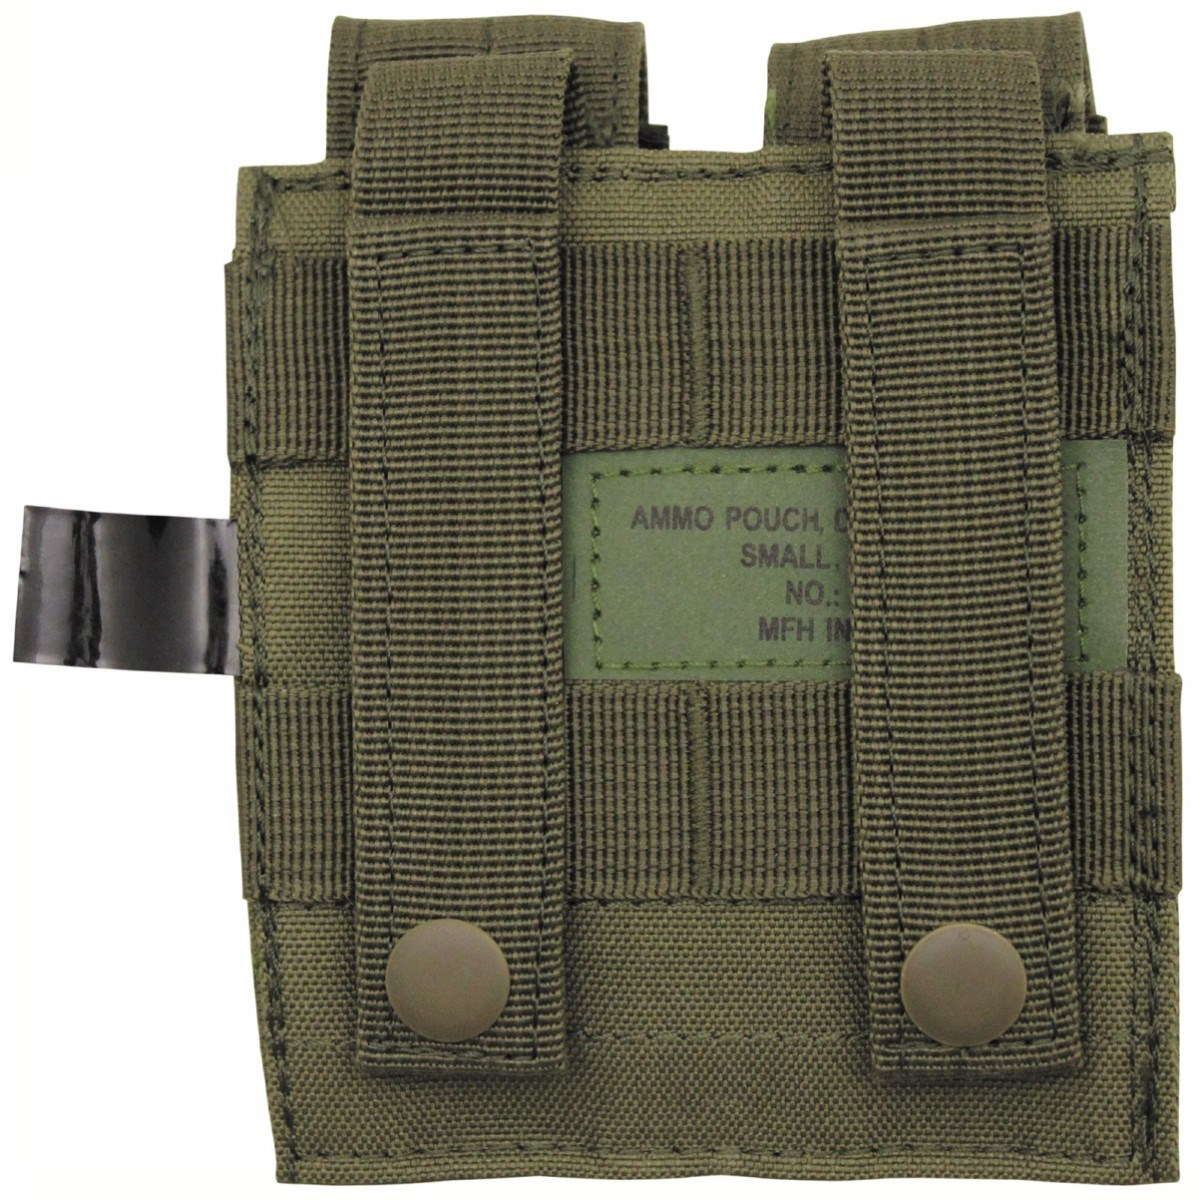 Pouch MOLLE Double the gun. stocks. OLIVE MFH int. comp. 30617B L-11